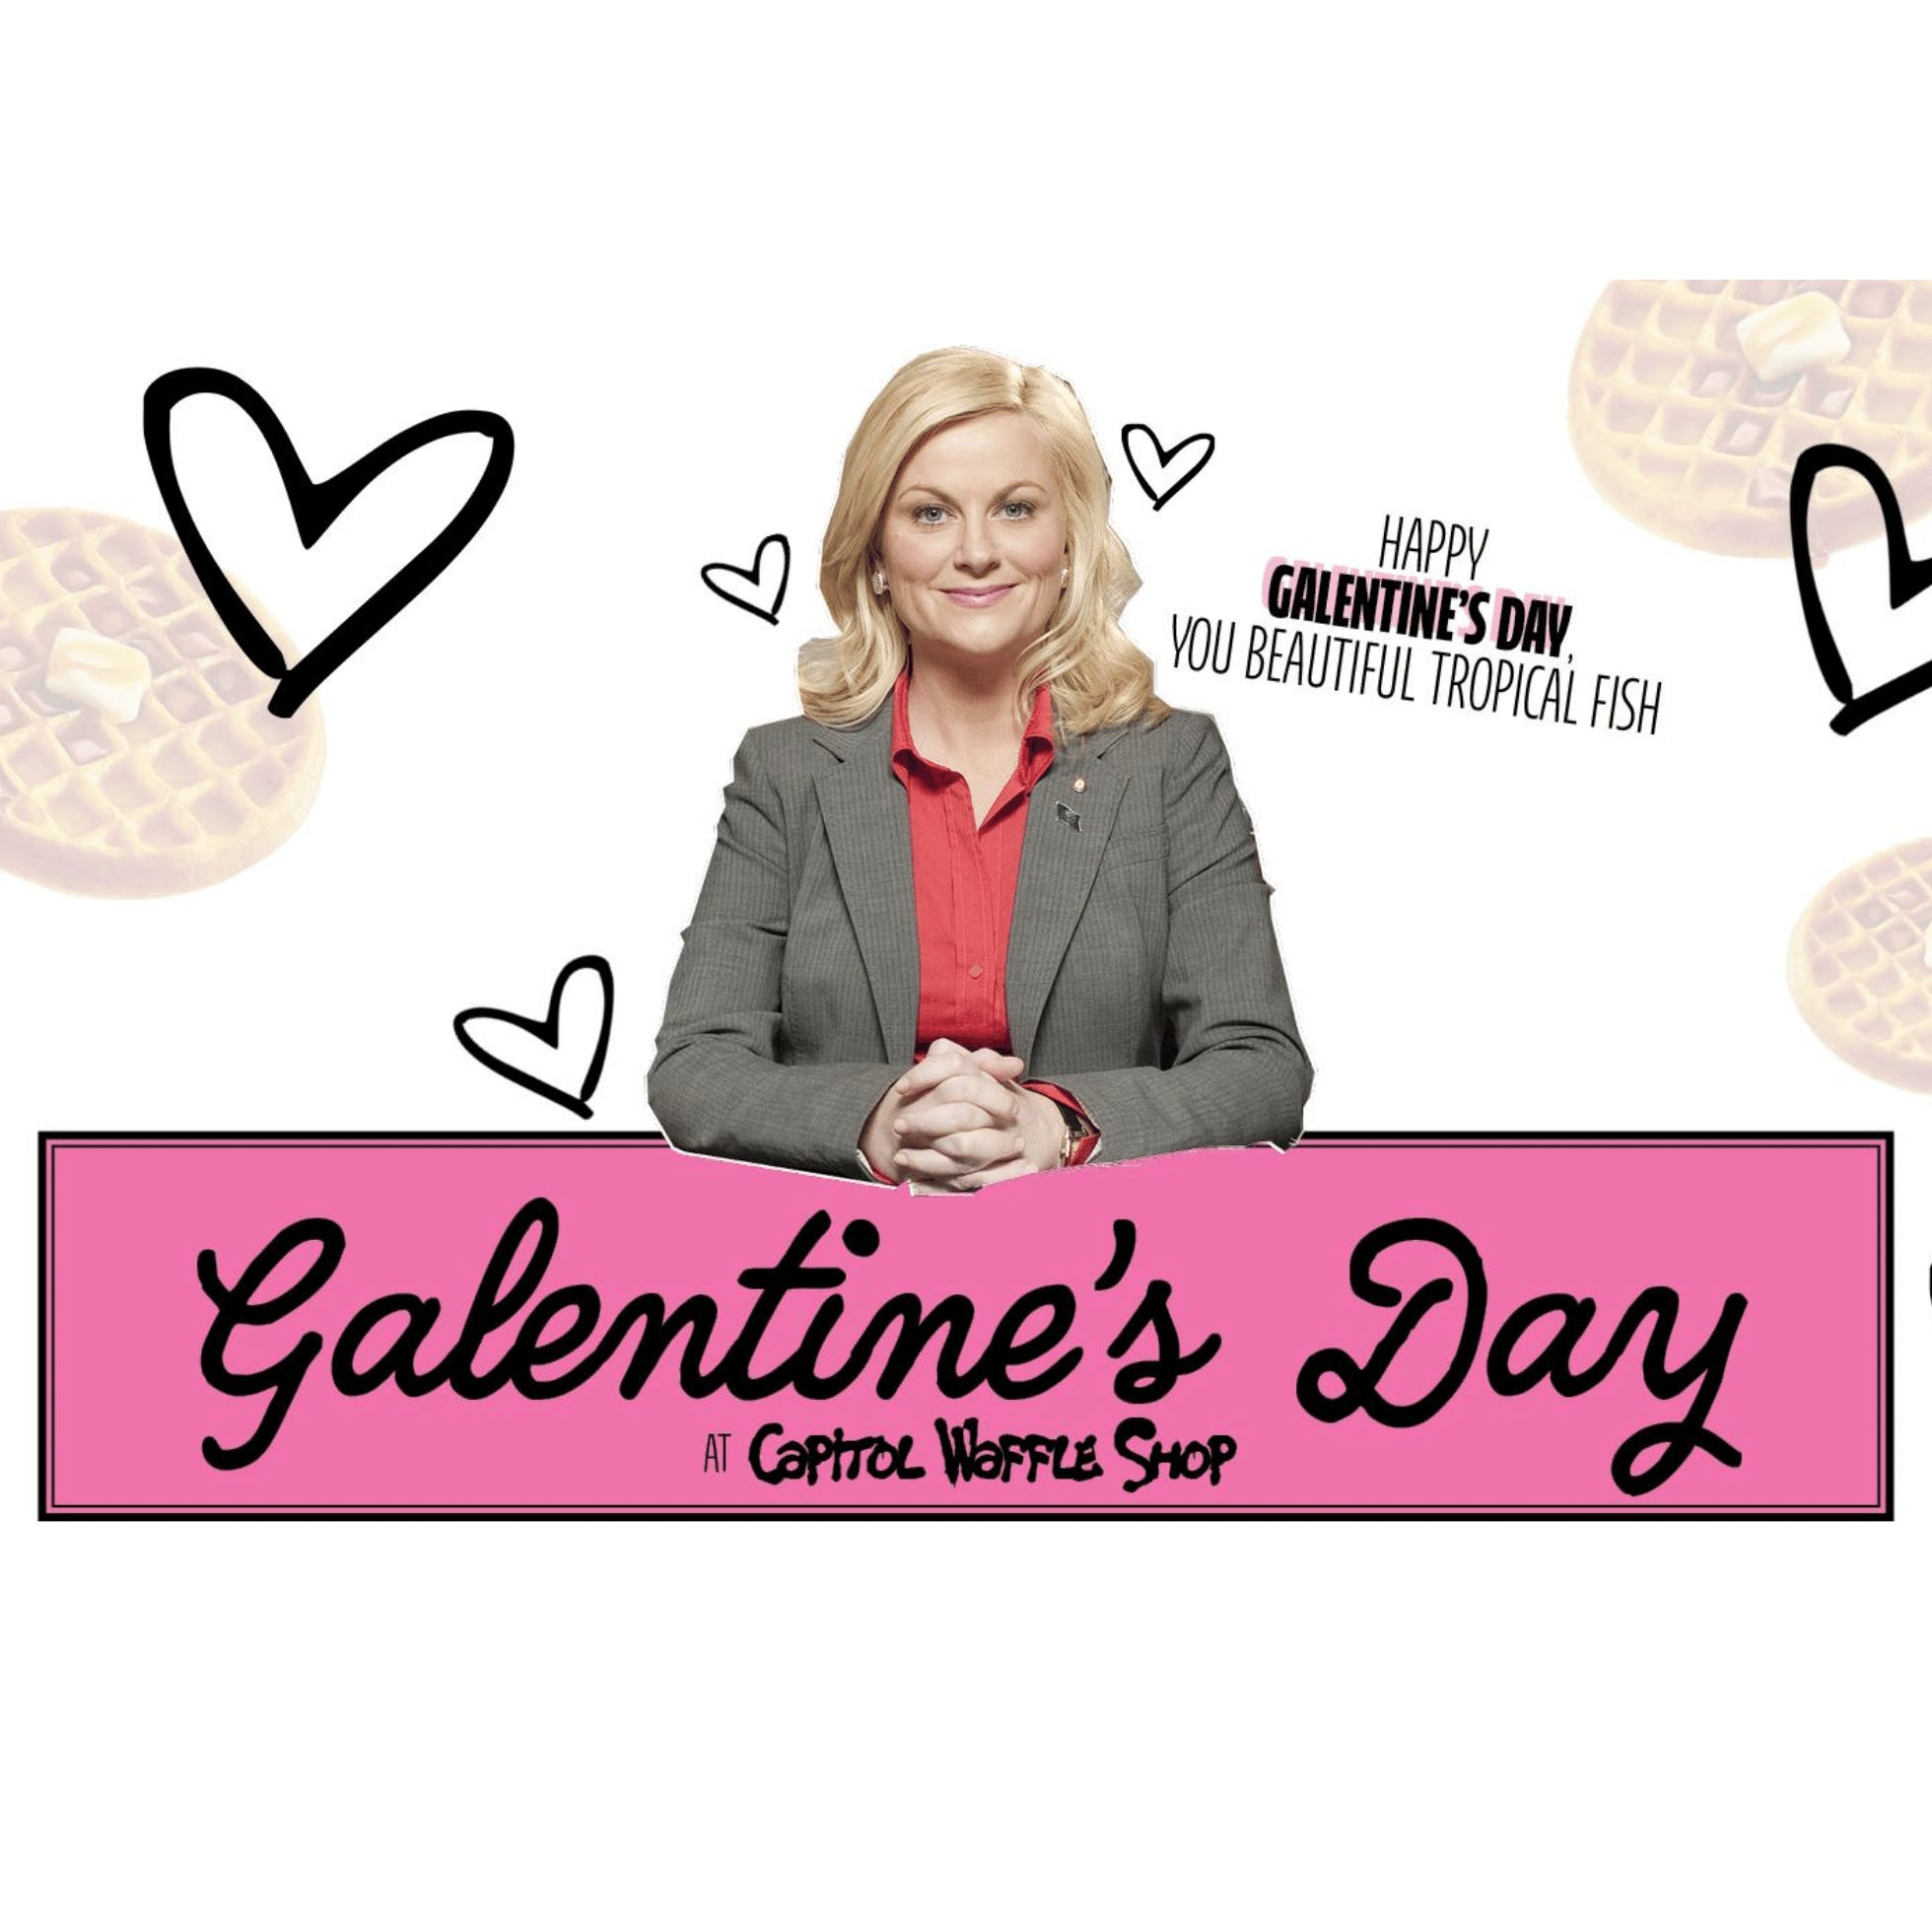 Galentine's Day at Capitol Waffle Shop